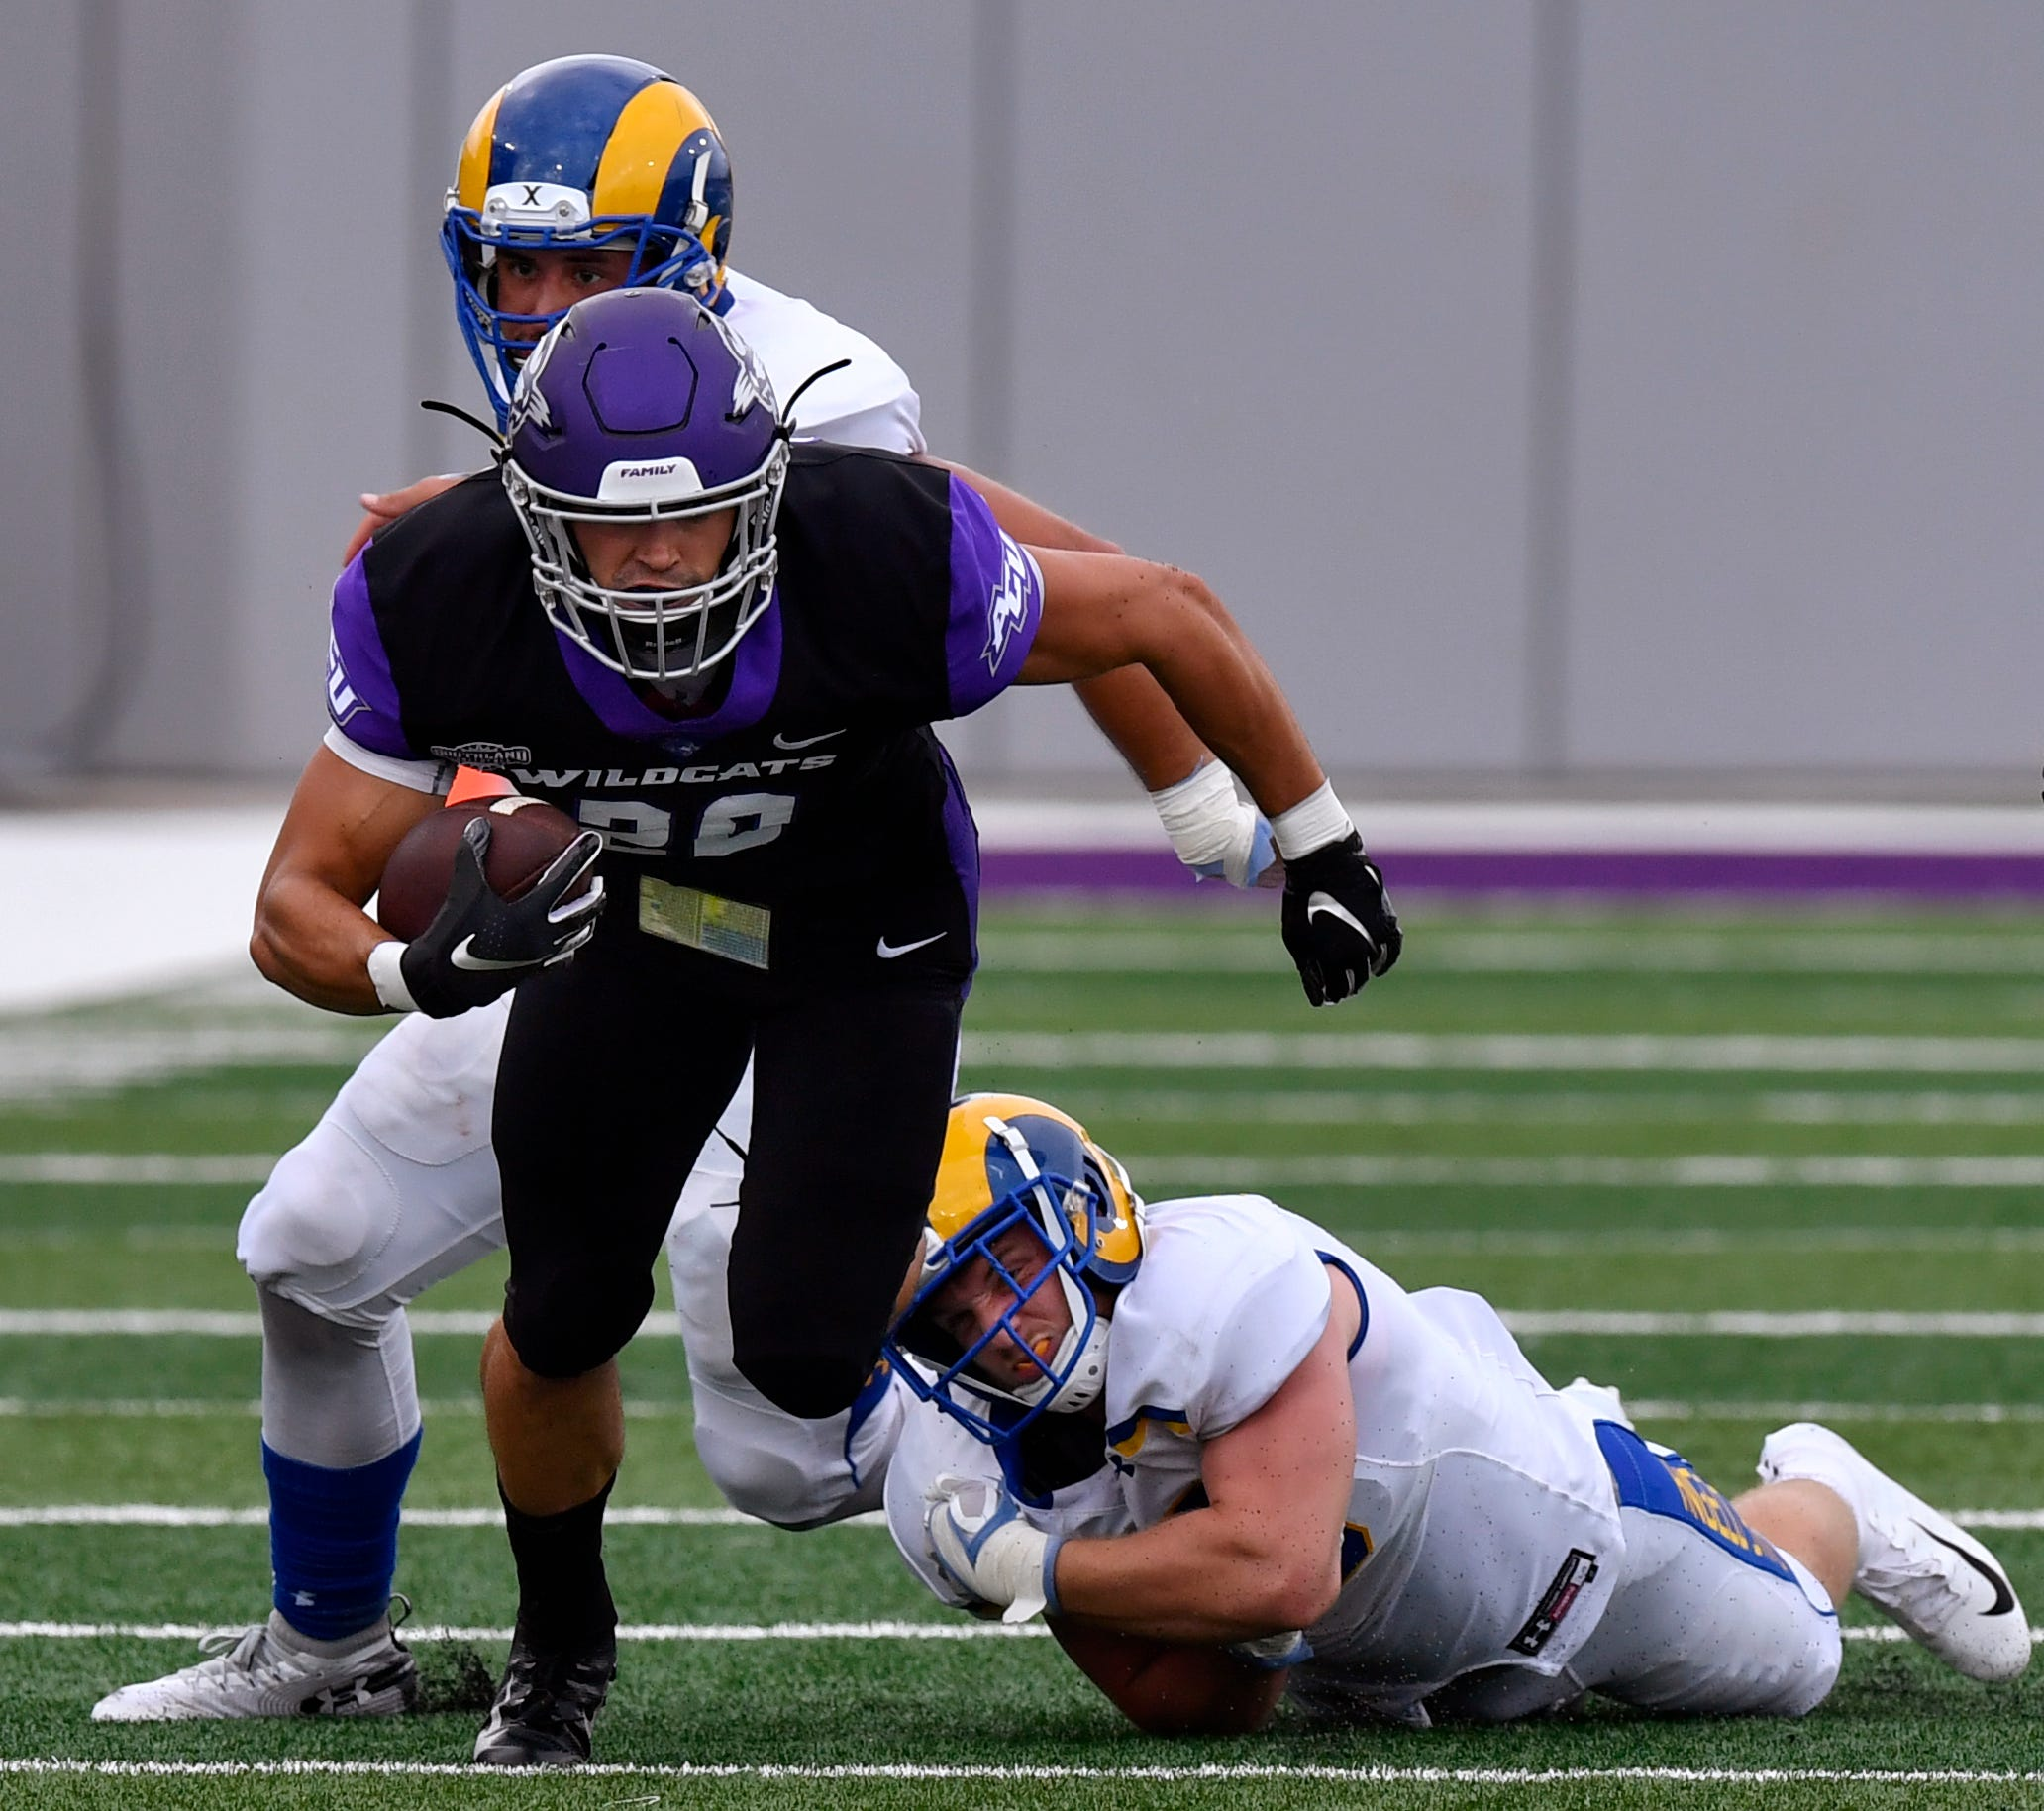 ACU's running back Billy McCrary breaks a tackle as he gains yardage against Angelo State on Sept. 8 at Wildcat Stadium.